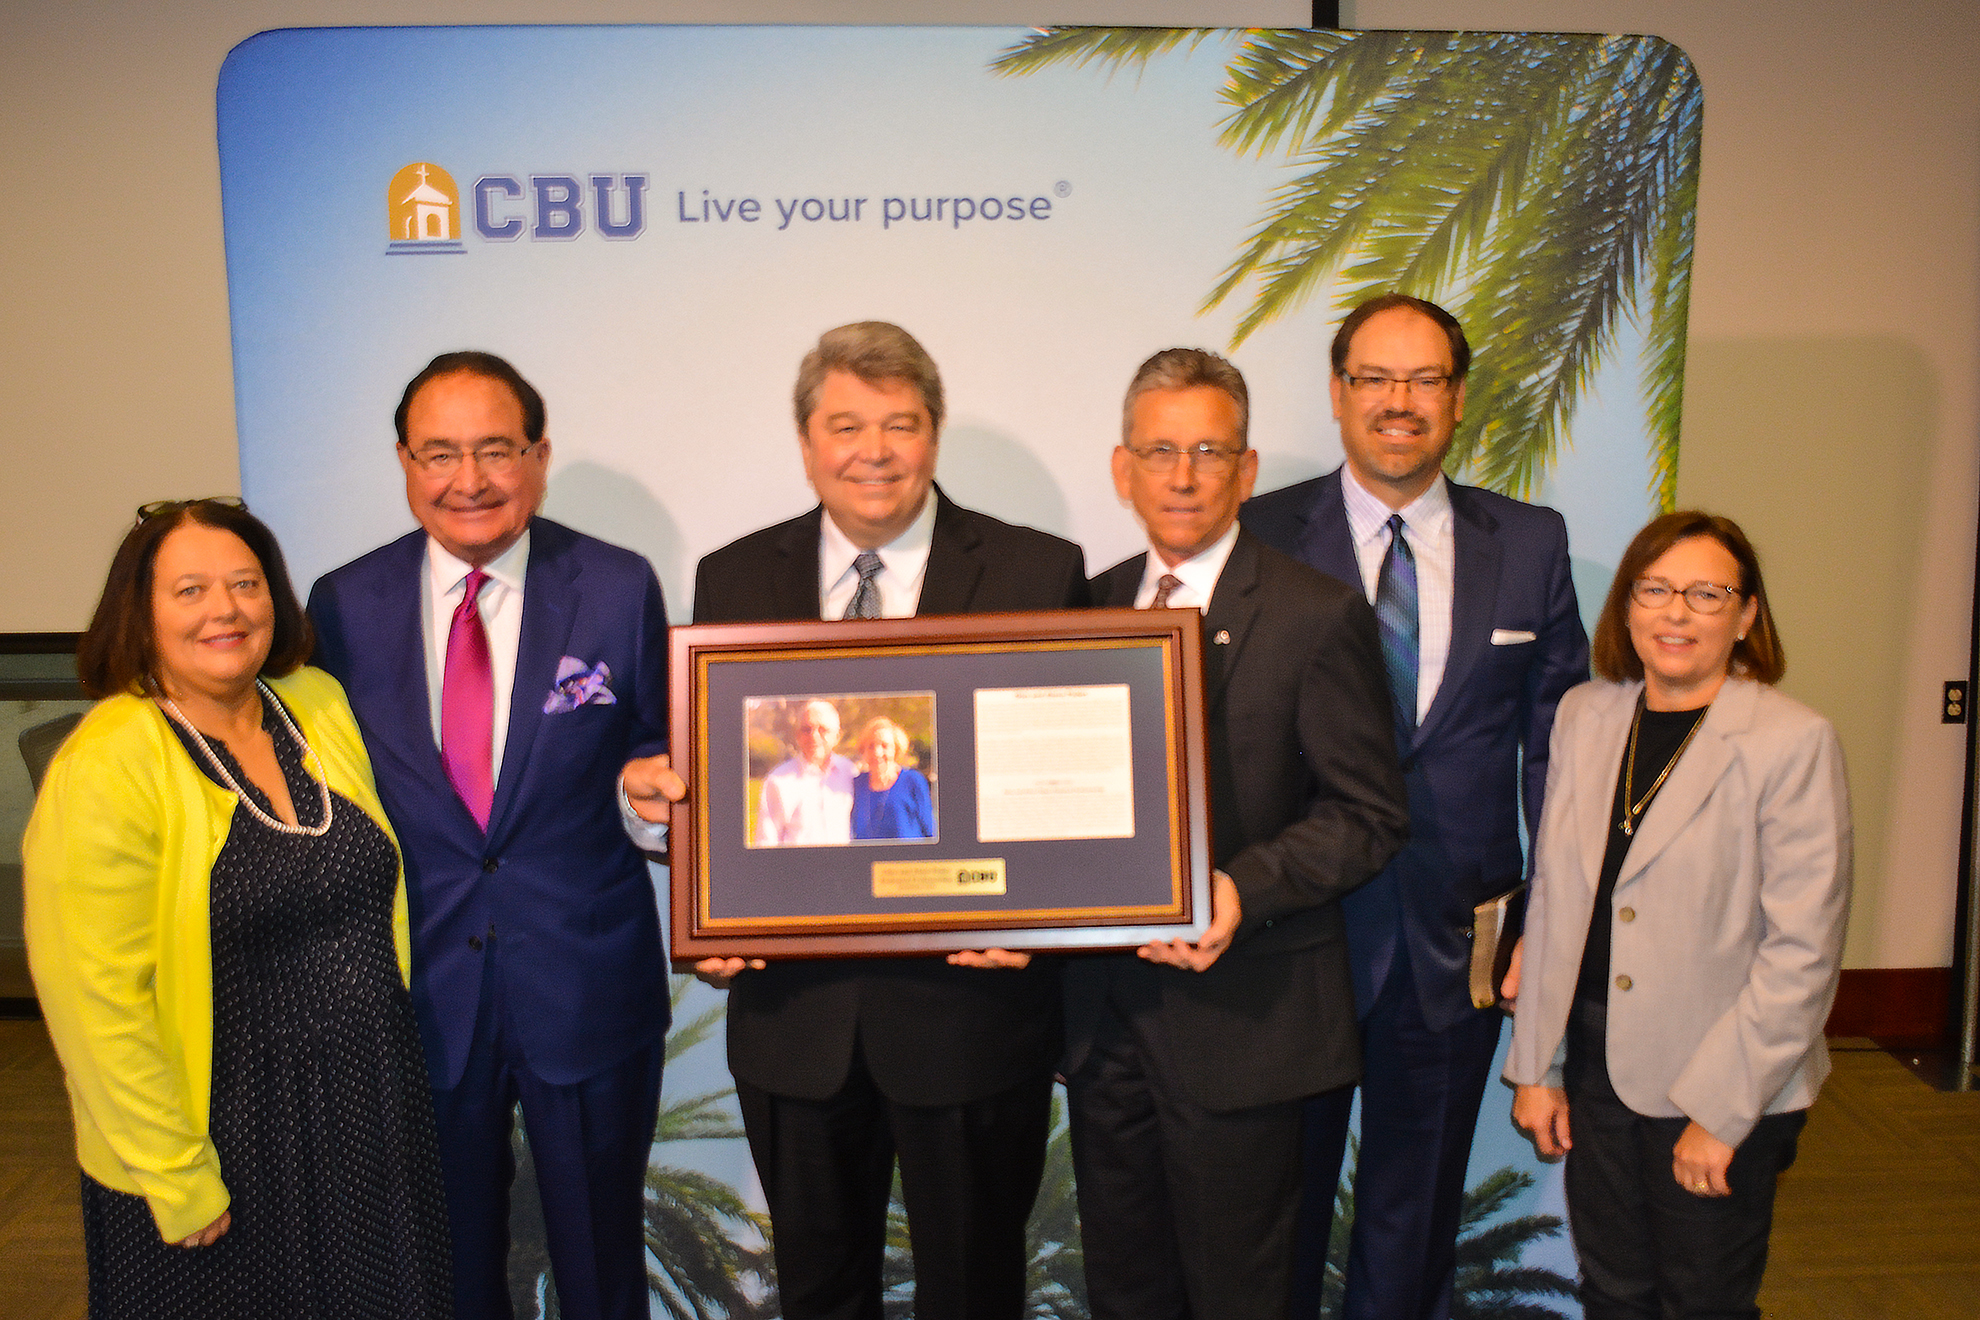 The School of Christian Ministries at California Baptist University commemorates its first $1 million endowed professorship, named in honor of Dr. Glen and Alene Paden on April 5.